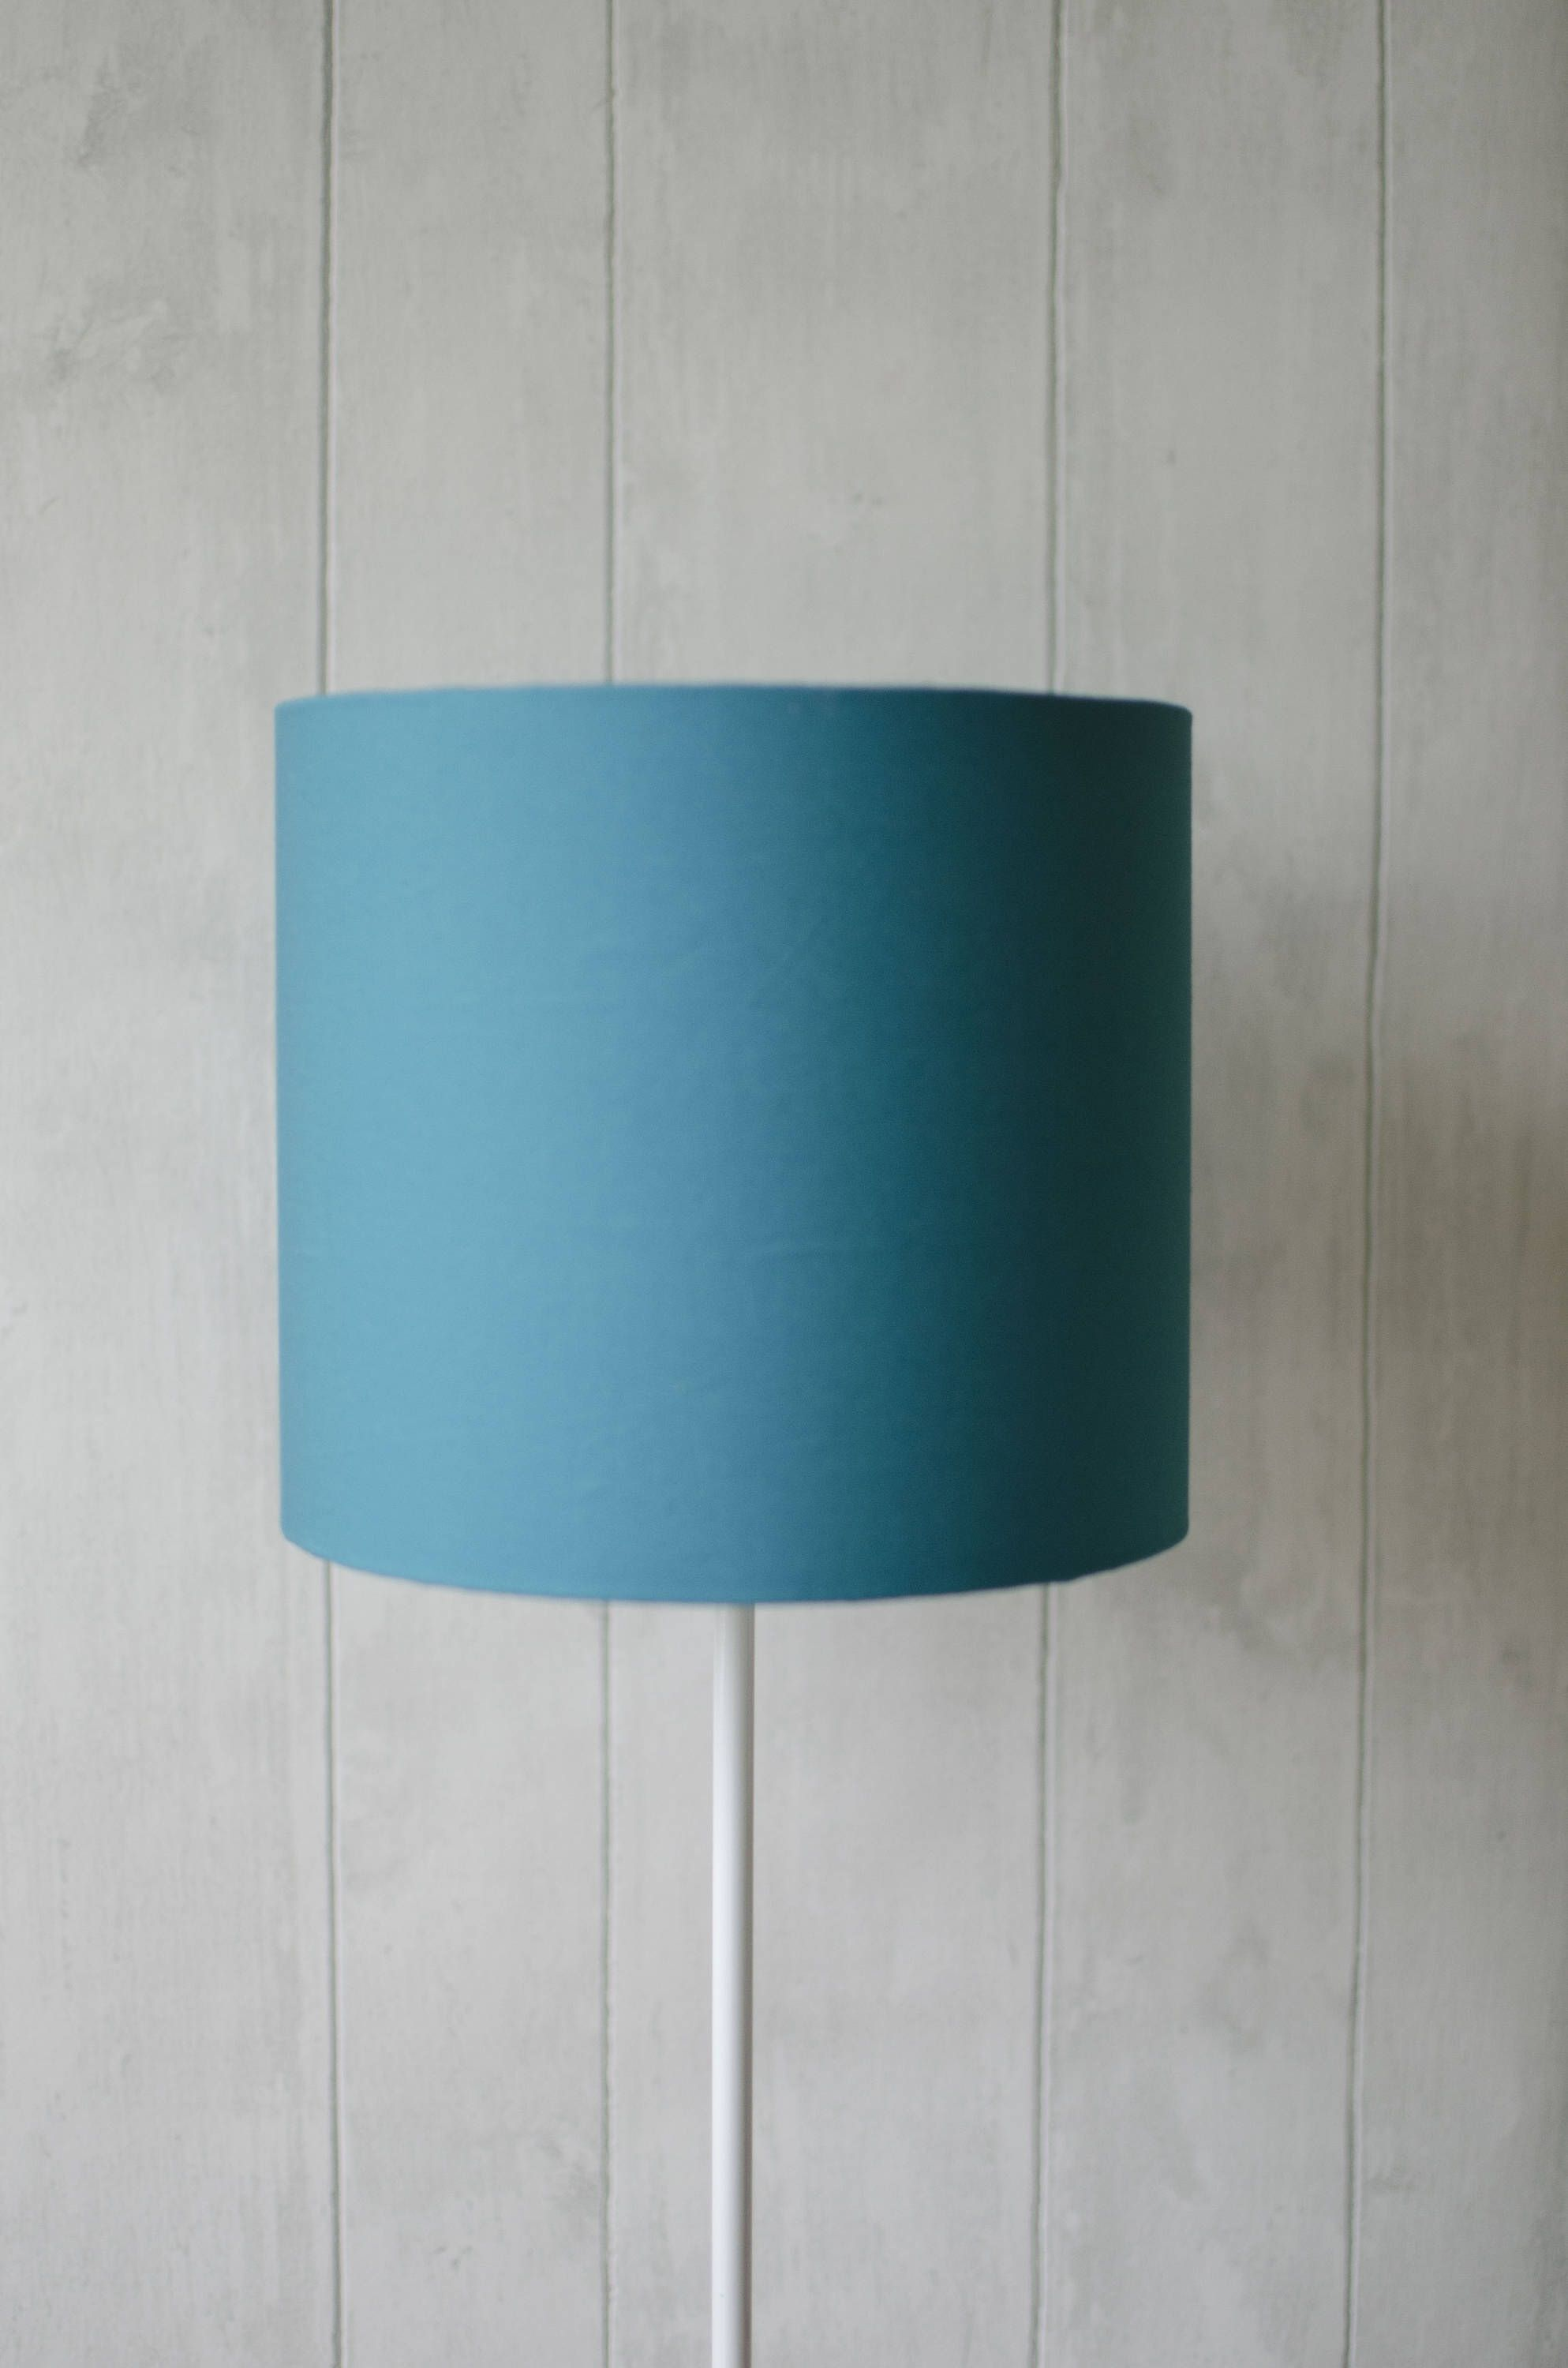 Turquoise Lamp Shade Turquoise Home Decor Simple Lamp Plain Etsy Turquoise Lamp Shade Turquoise Lamp Simple Lamp